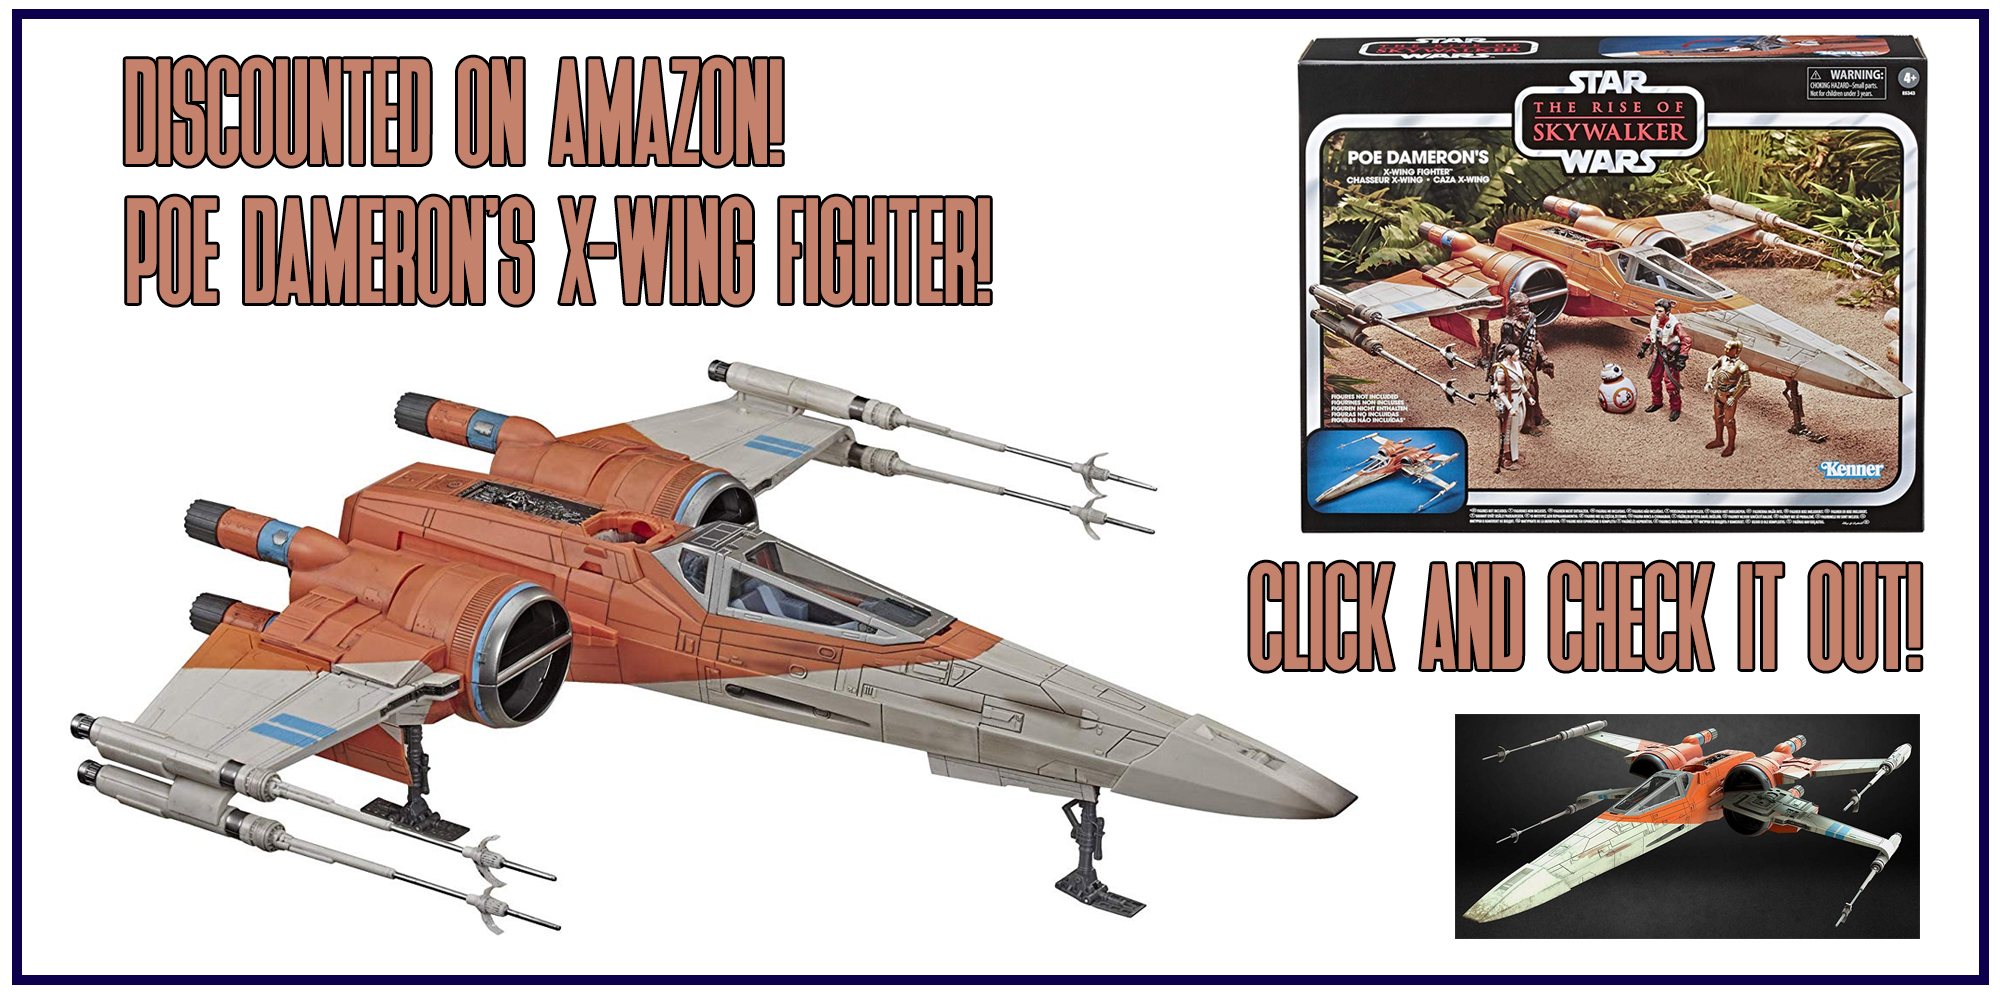 Poe Dameron S X Wing Fighter 10 Off At Amazon